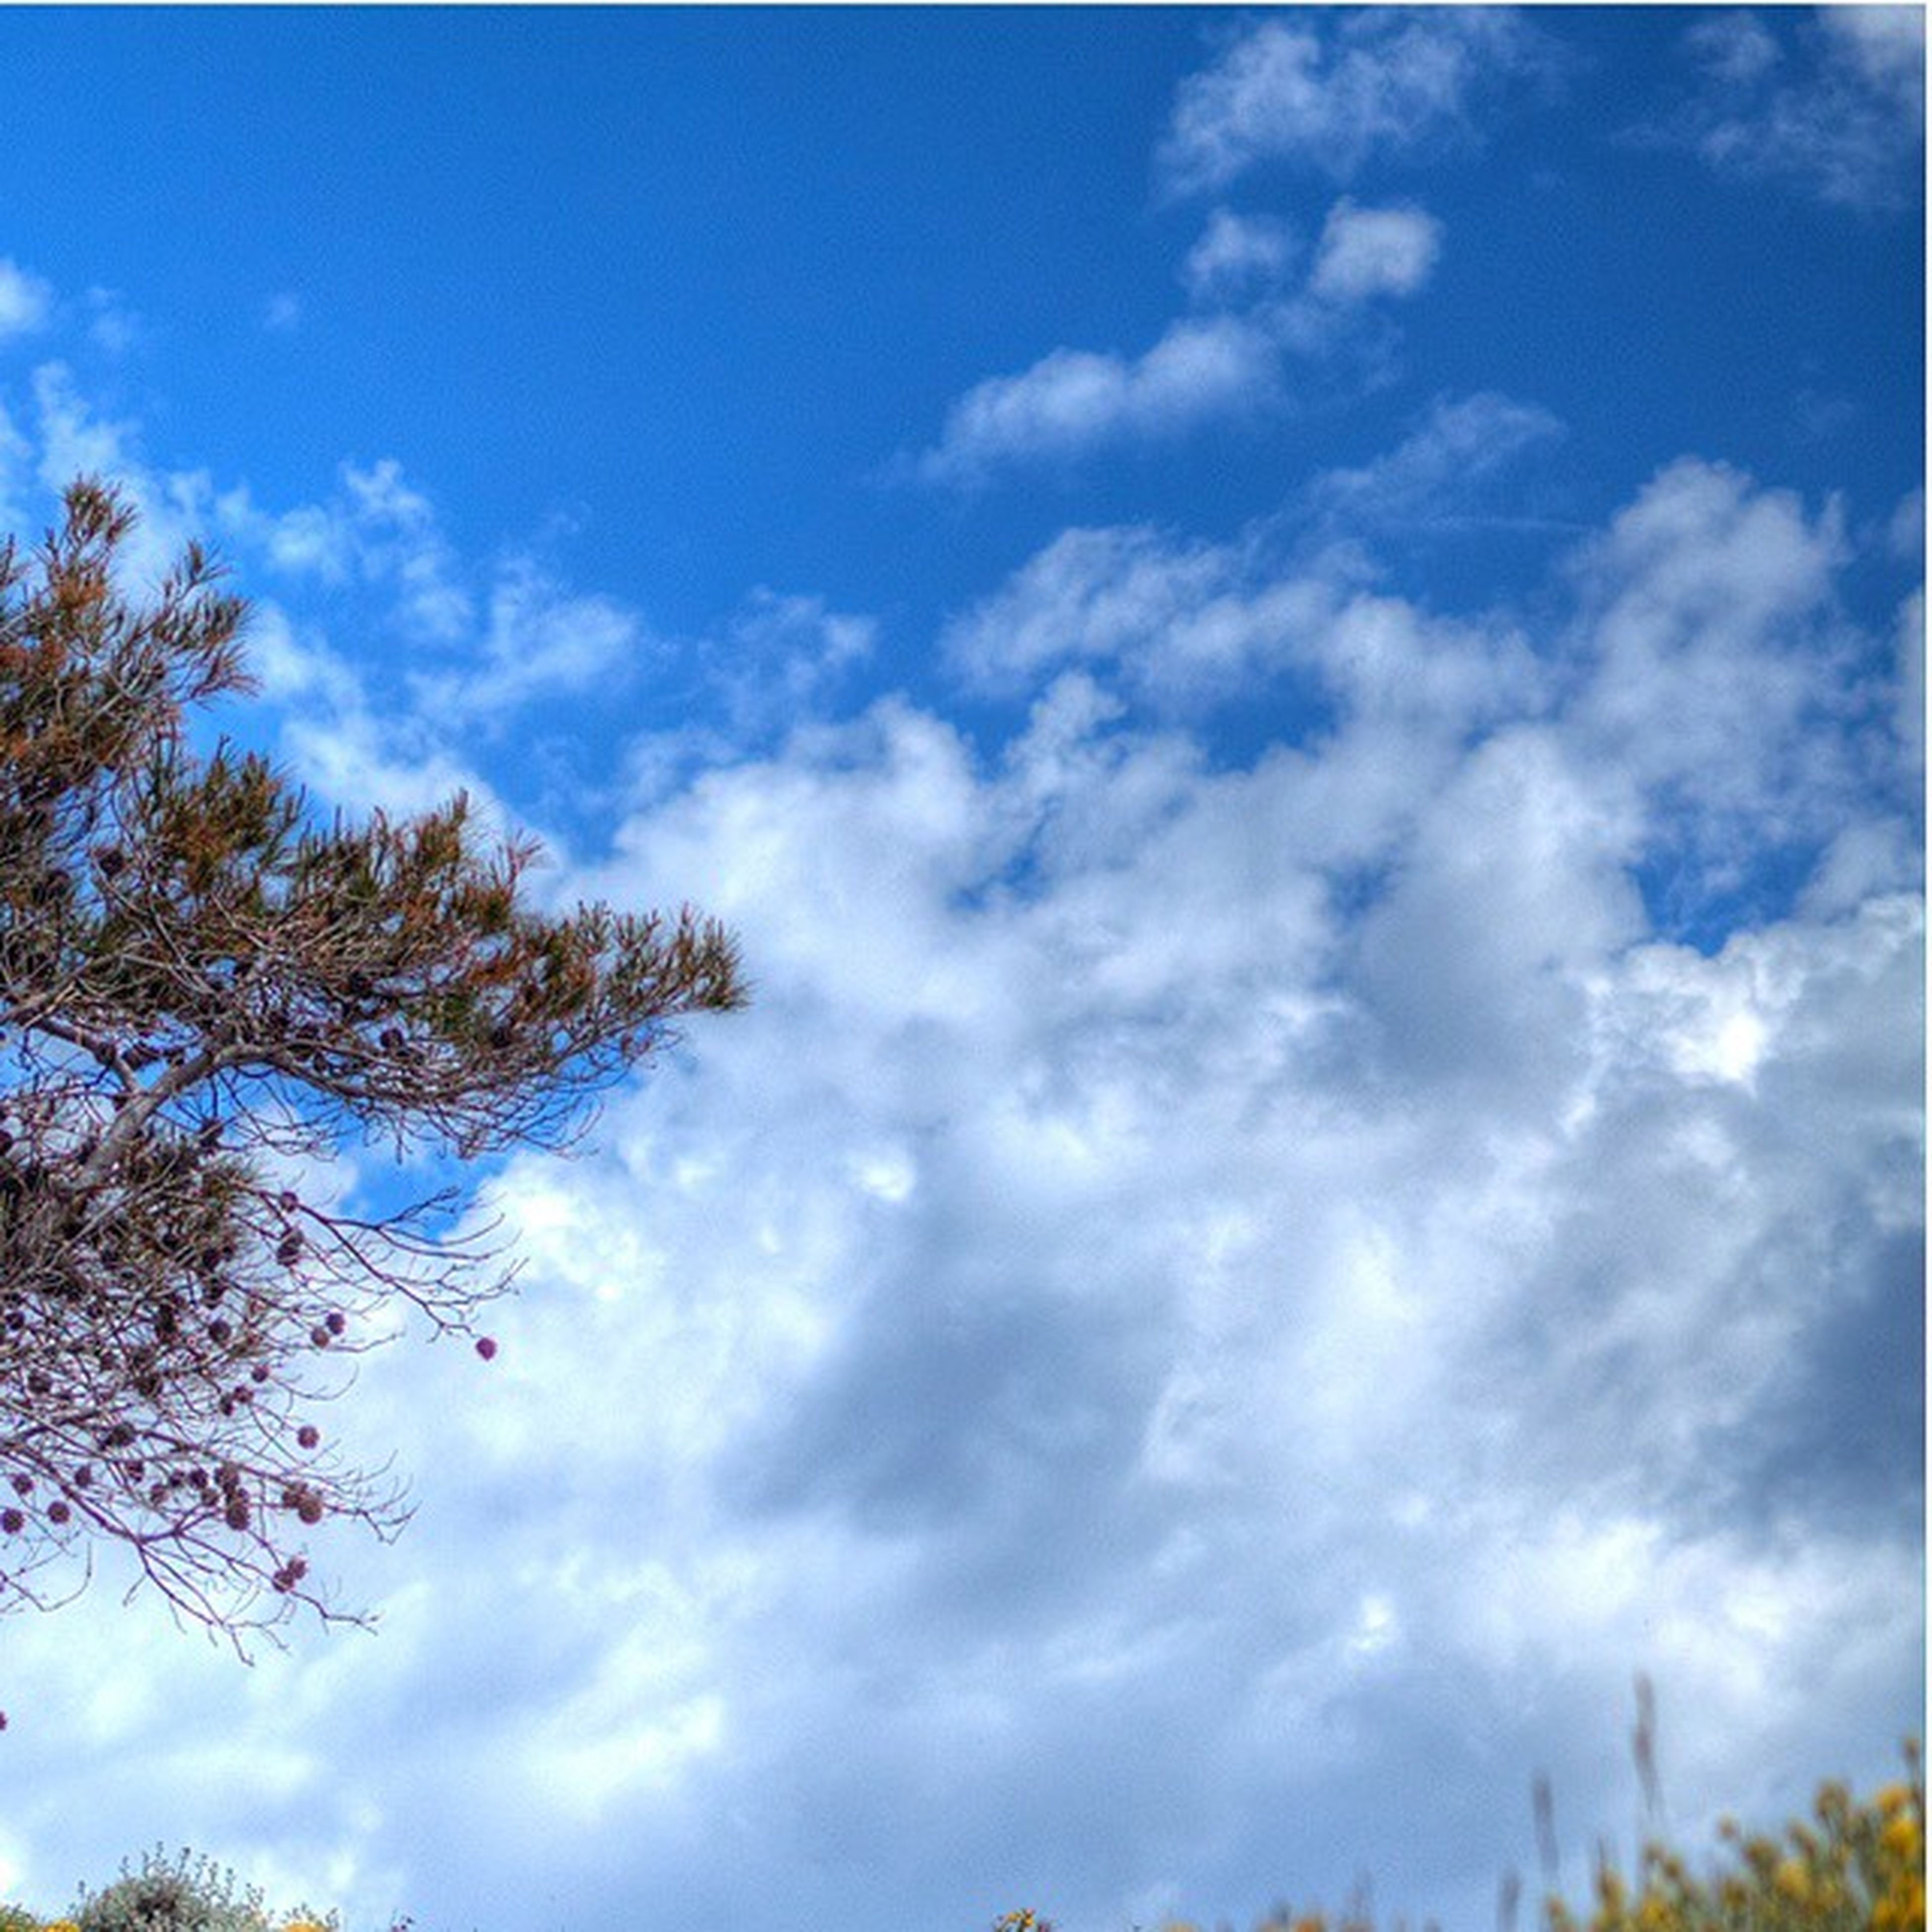 sky, low angle view, cloud - sky, tree, tranquility, beauty in nature, cloudy, cloud, nature, tranquil scene, scenics, blue, growth, day, outdoors, no people, branch, idyllic, white color, cloudscape